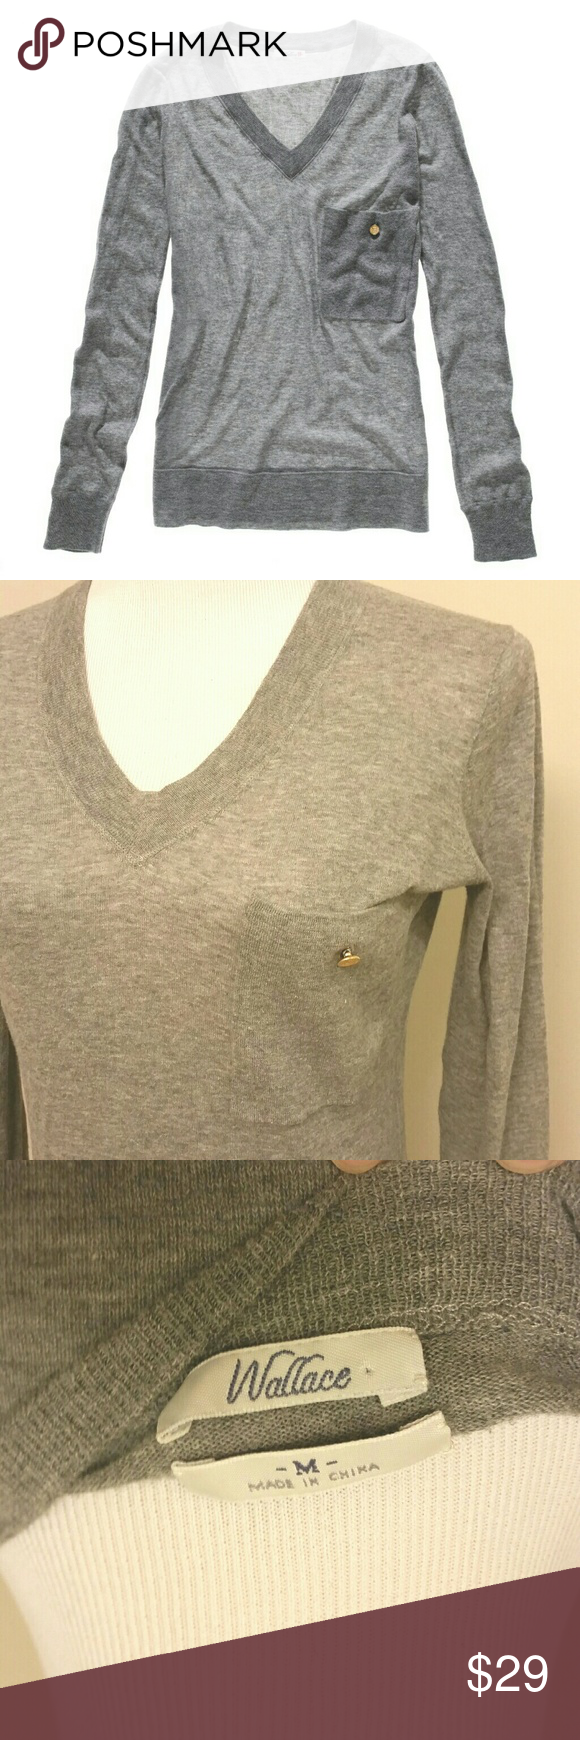 "Madewell Academy Sweater M Madewell Academy Sweater in heather grey. Whisper thin and perfectly cut, this v neck is perfection for layering. Breast pocket with gold button detail. Bust measures 20"" laying flat. EUC, with only the slightest bit of wear under the arms as shown in the last picture. Madewell Sweaters V-Necks"